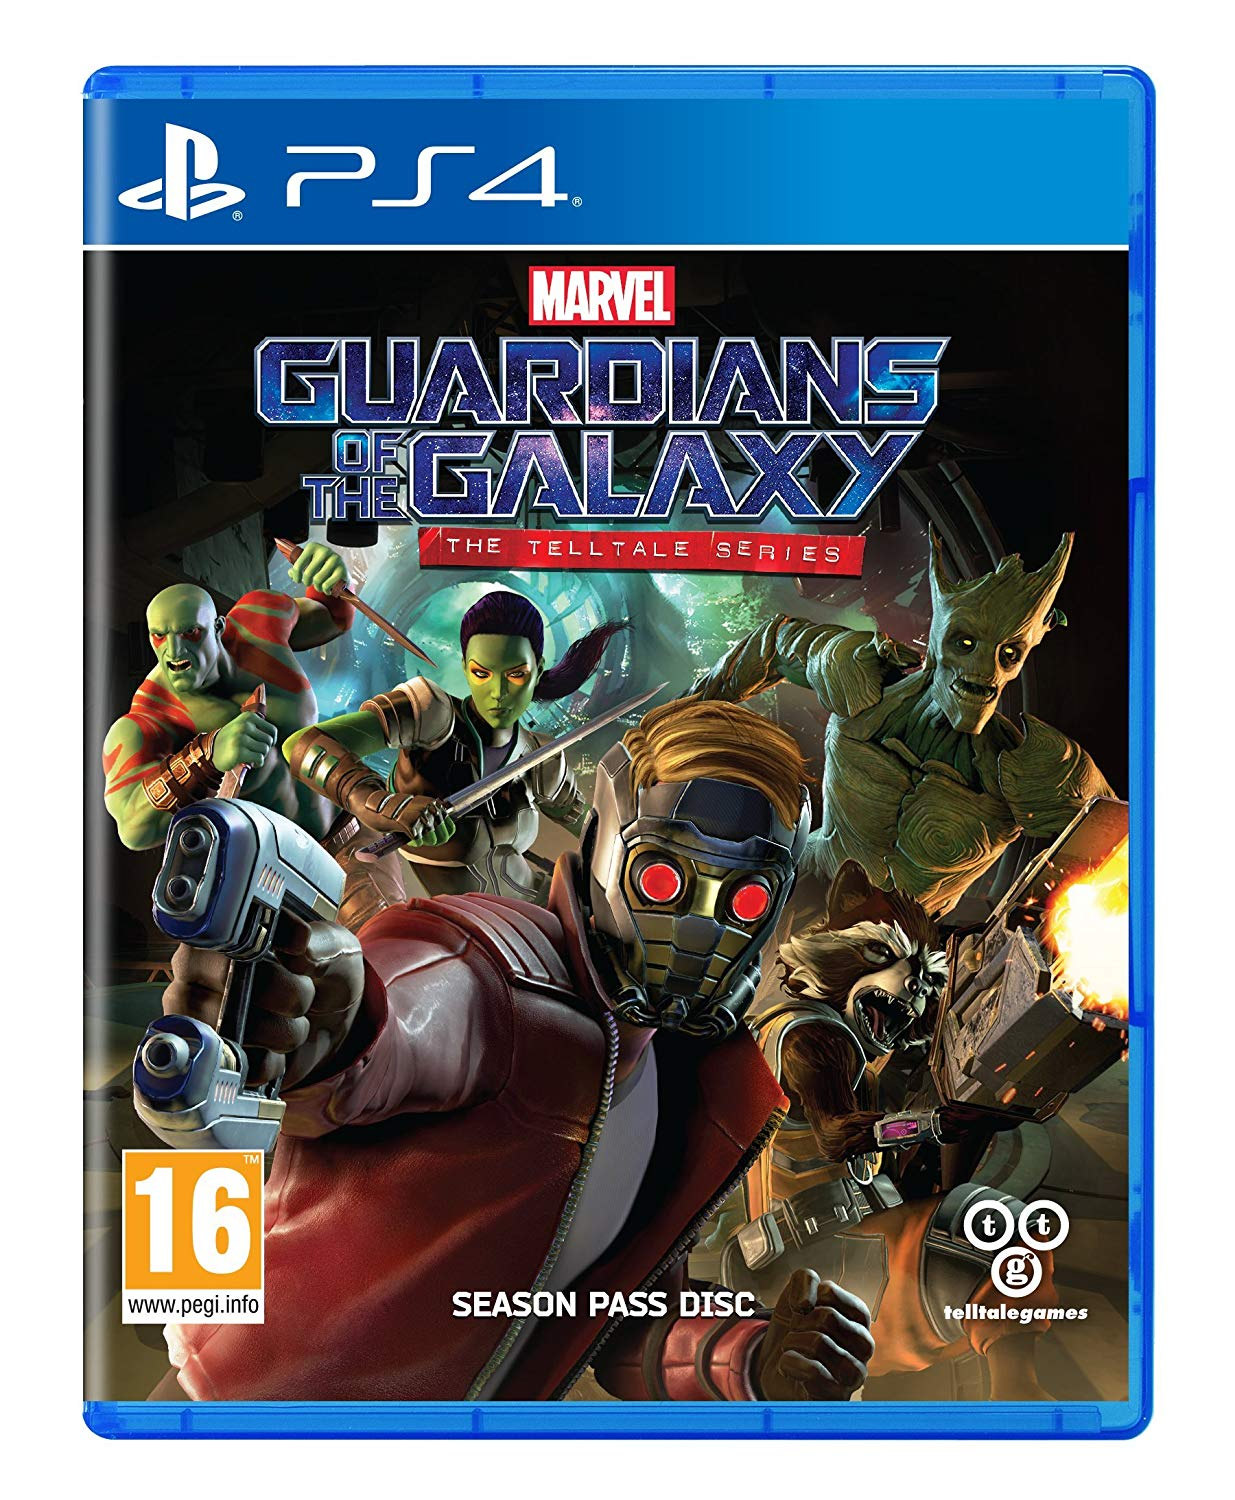 Guardians Of The Galaxy: The Telltale Series PS4, PS4, DVDMEGASTORE, DVDMEGASTORE